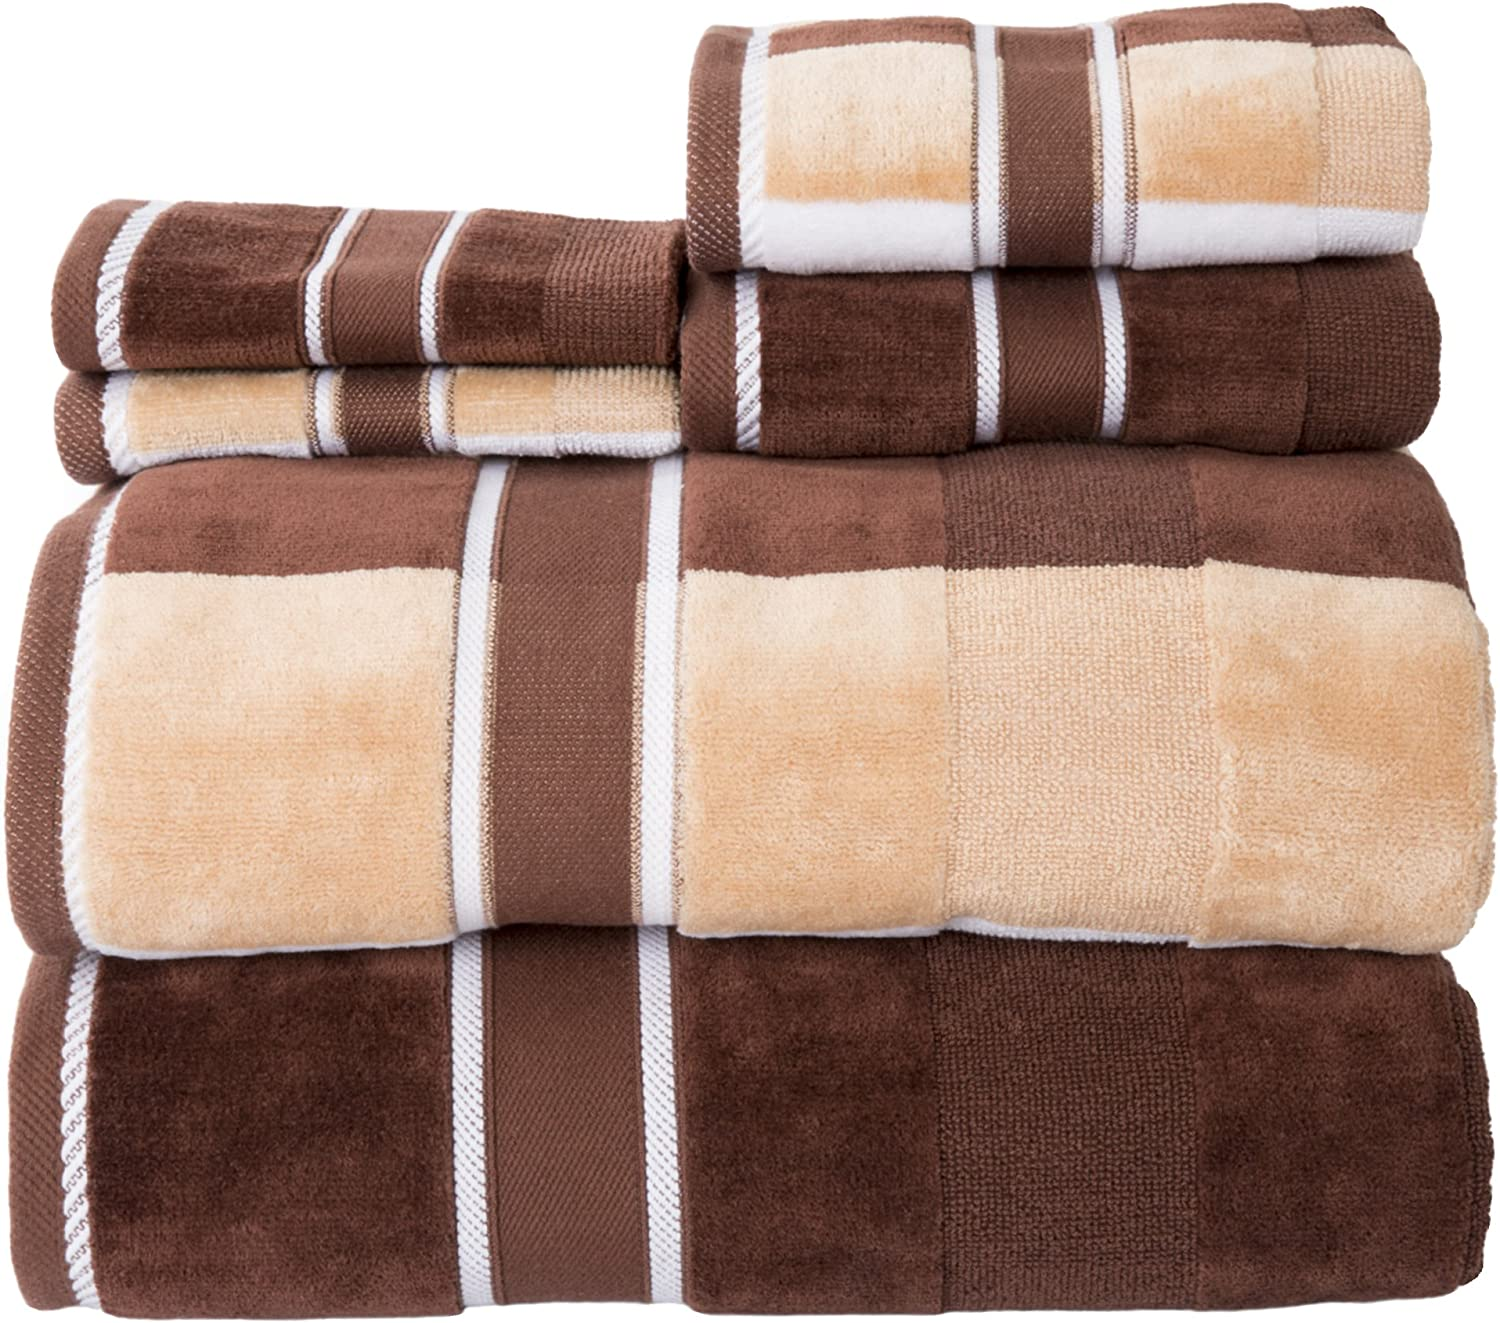 Lavish Home 100% Cotton Oakville Velour 6 Piece Towel Set-Chocolate